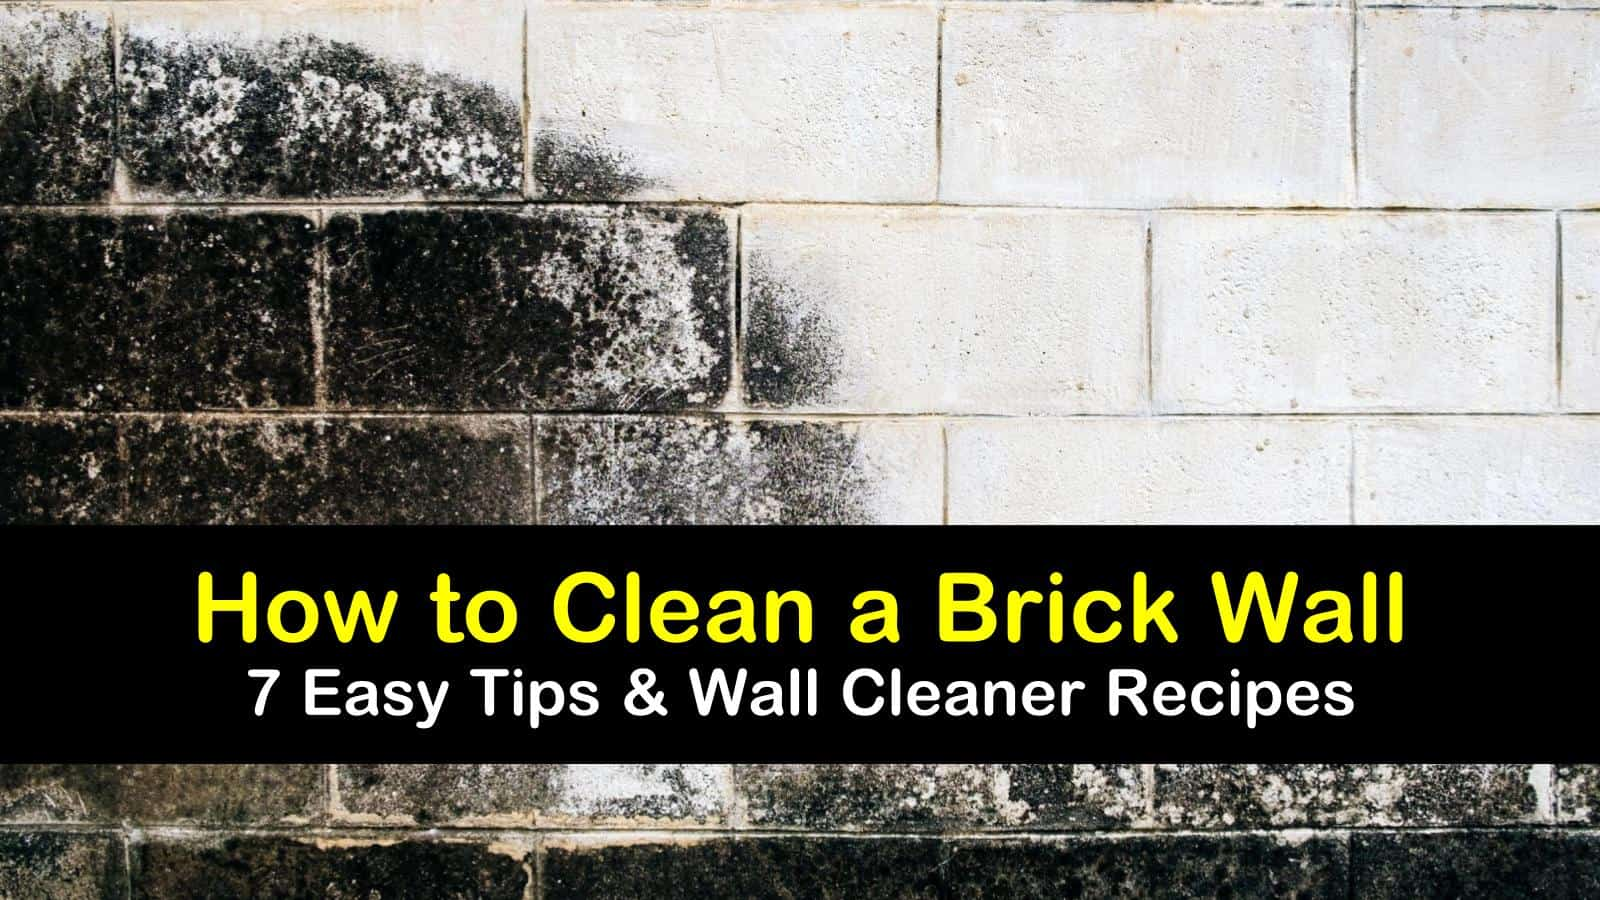 how to clean a brick wall titleimg1